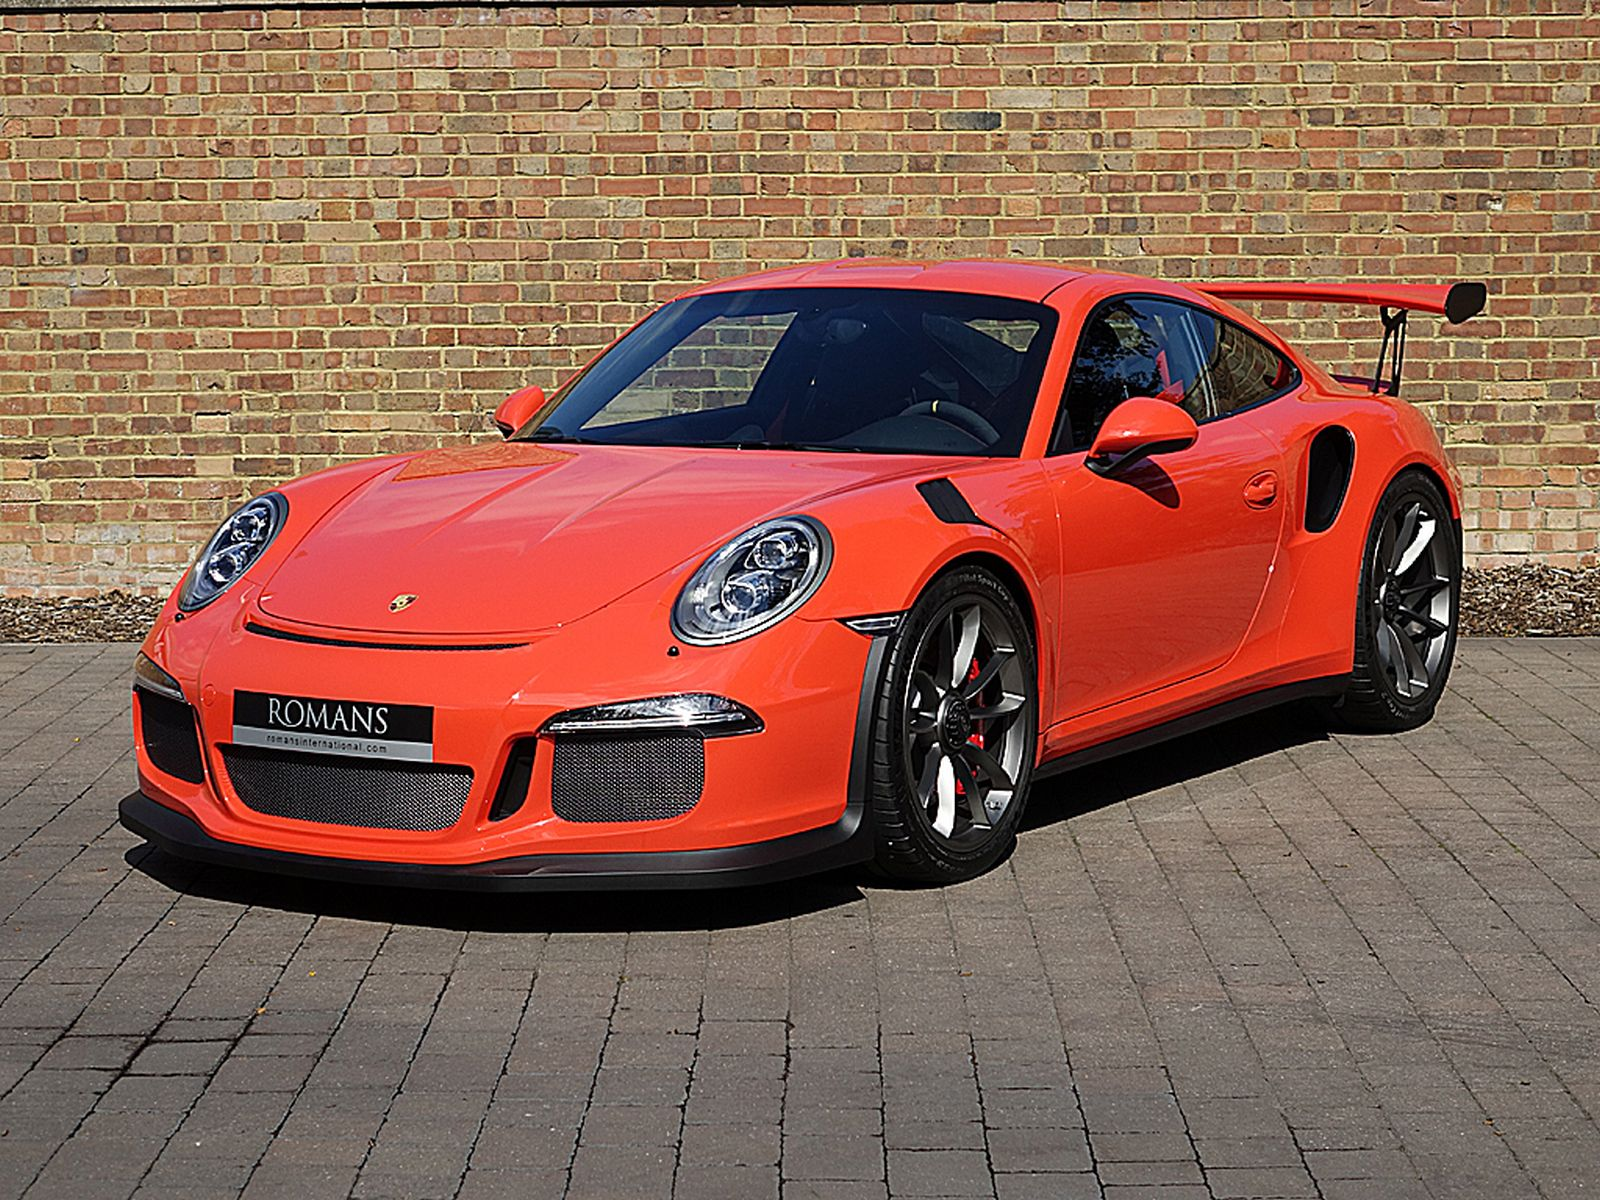 used 2016 porsche 911 gt3 rs for sale in the uk gtspirit. Black Bedroom Furniture Sets. Home Design Ideas